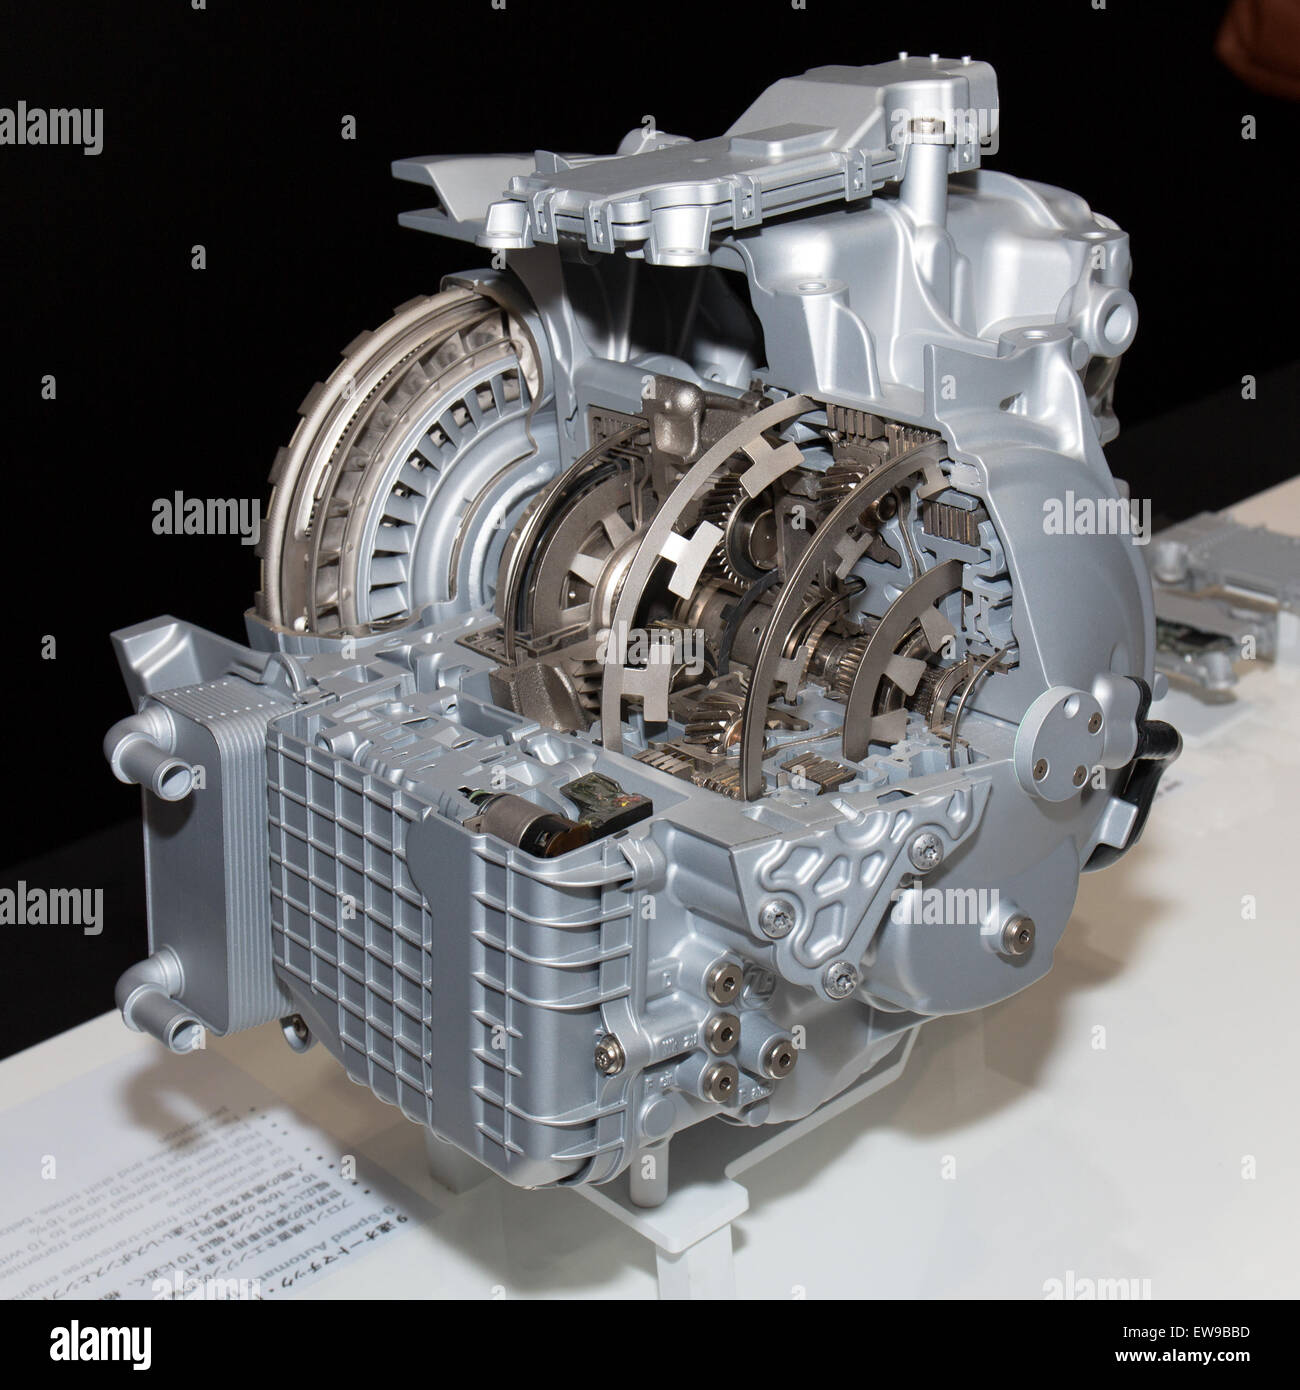 ZF 9-speed automatic transmission front-left 2013 Tokyo Motor Show - Stock Image